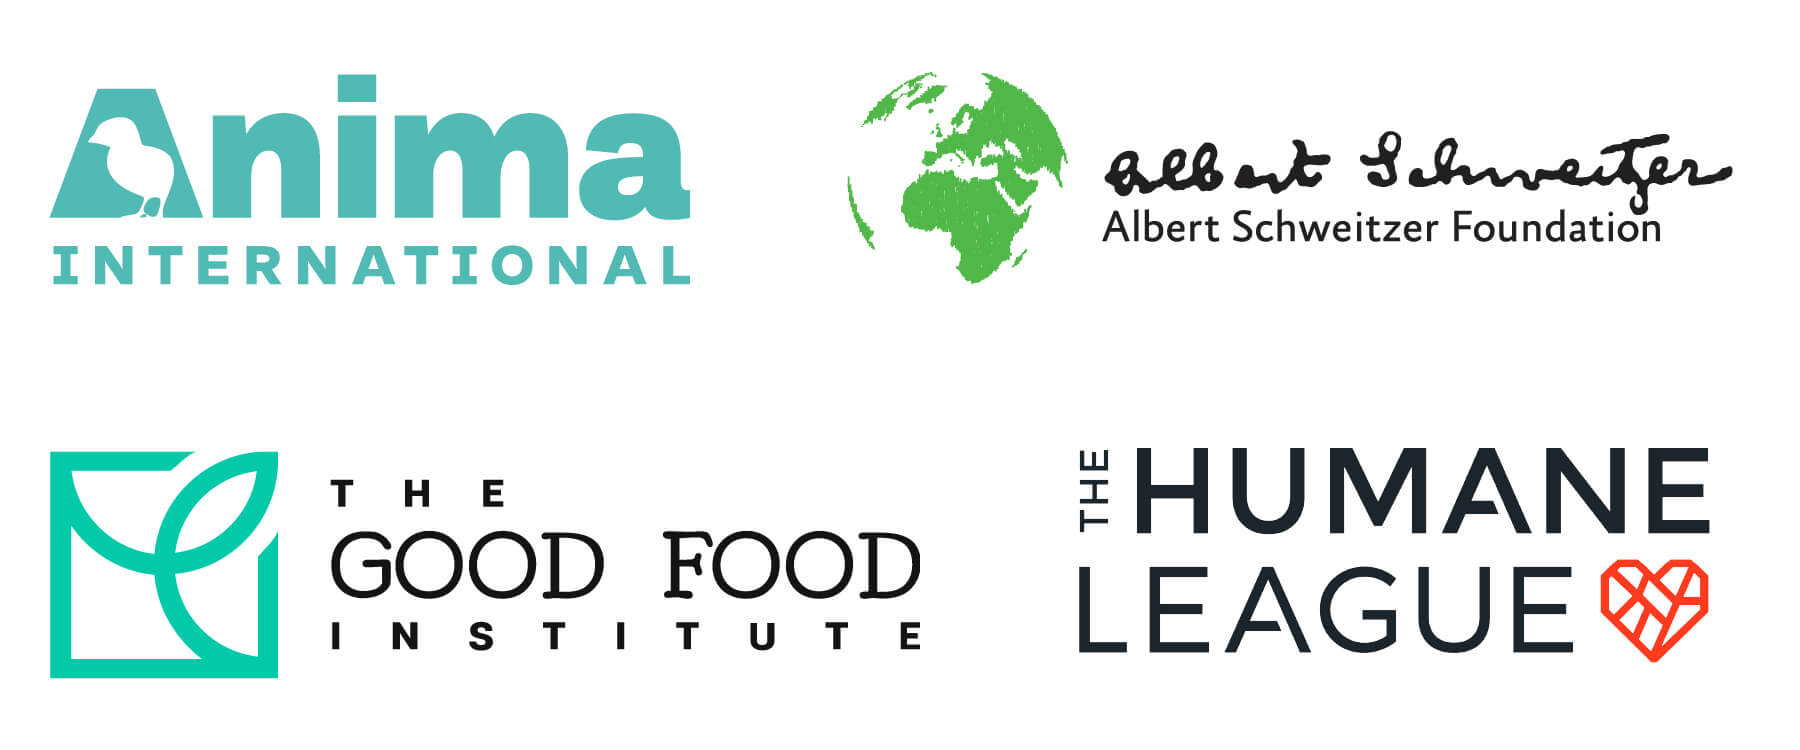 Albert Schweitzer Foundation, Anima International, The Good Food Institute, and The Humane League